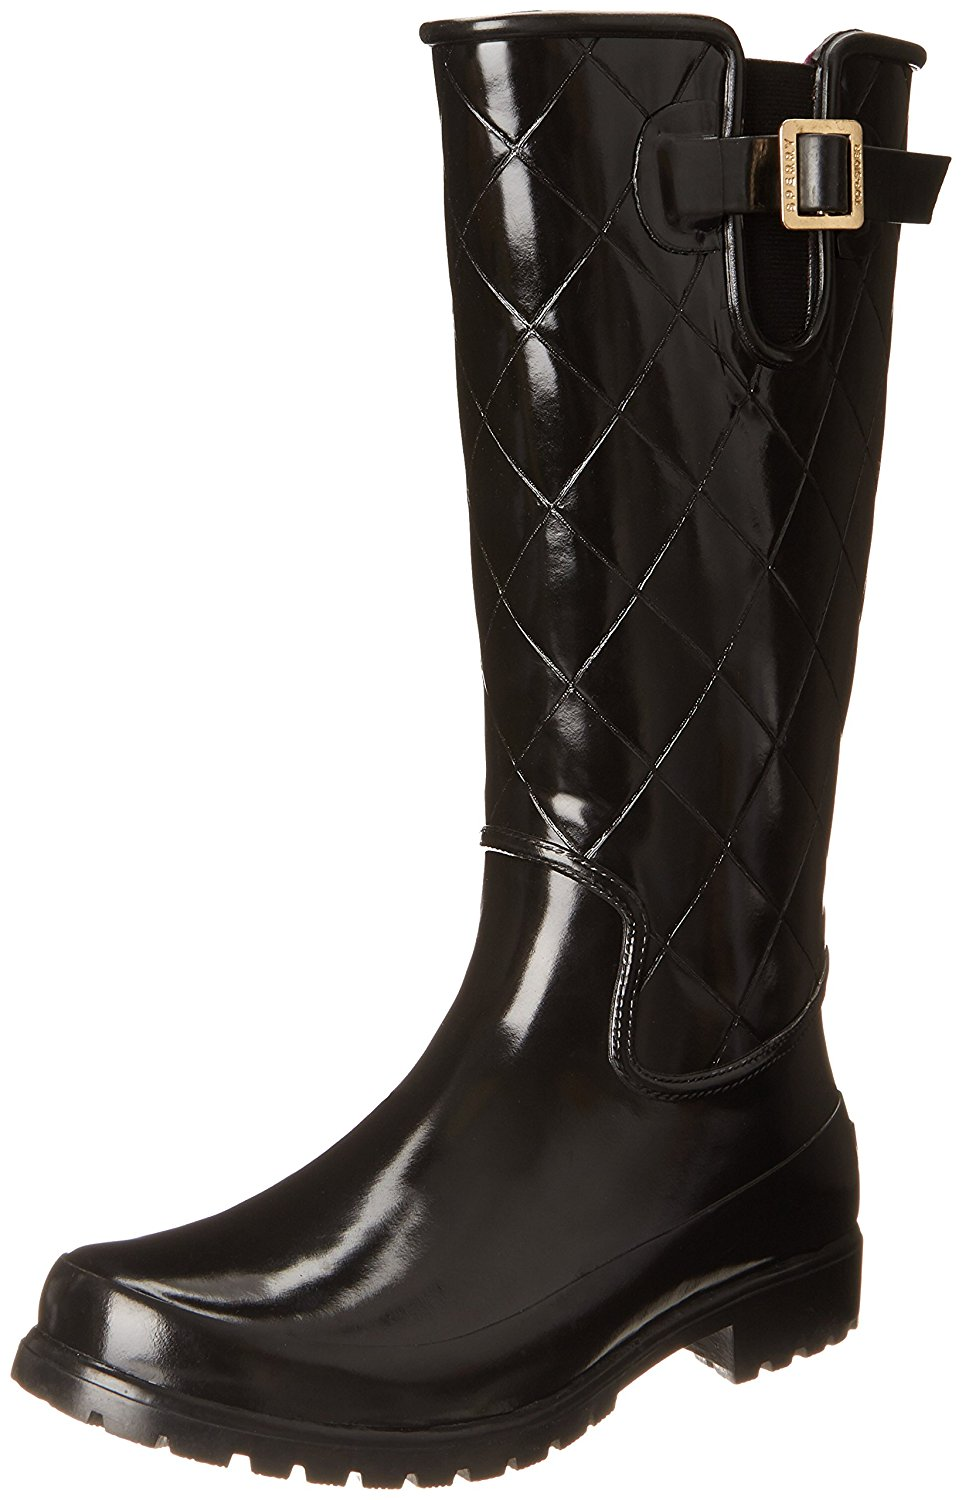 Sperry Top-Sider Women's Pelican III Rainboot